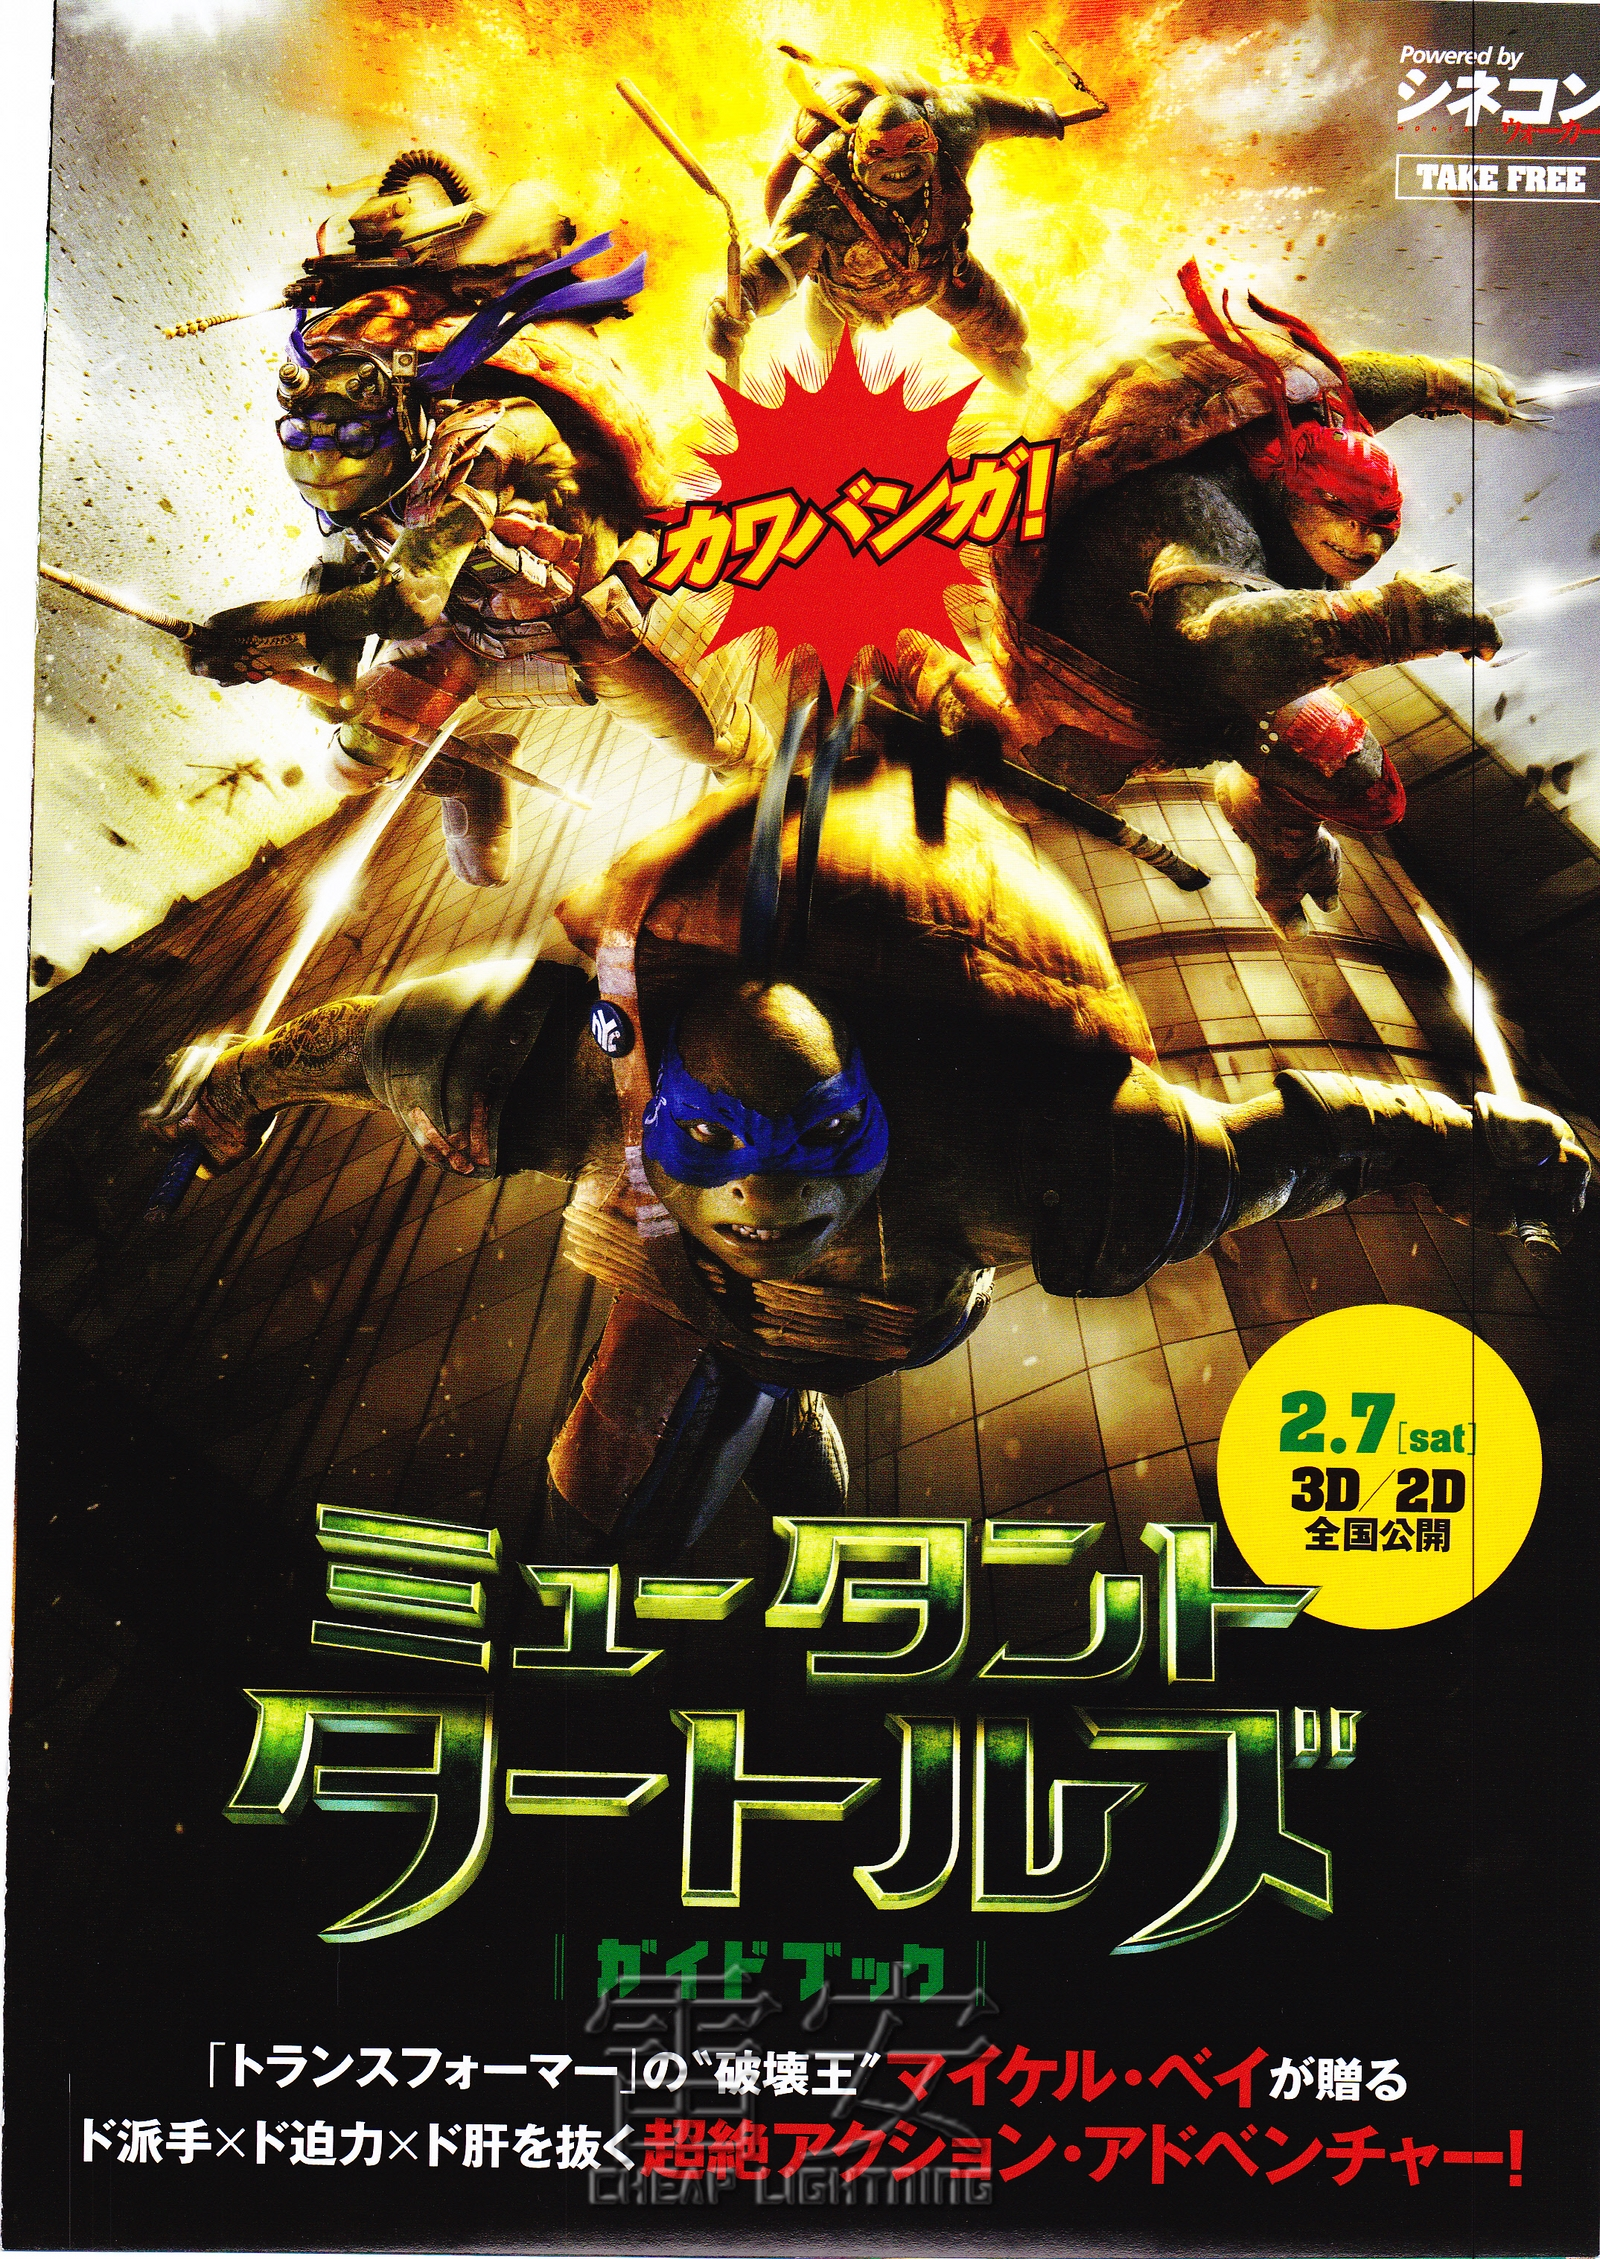 Teenage Mutant Ninja Turtles TMNT Mini Movie Poster Japan ...